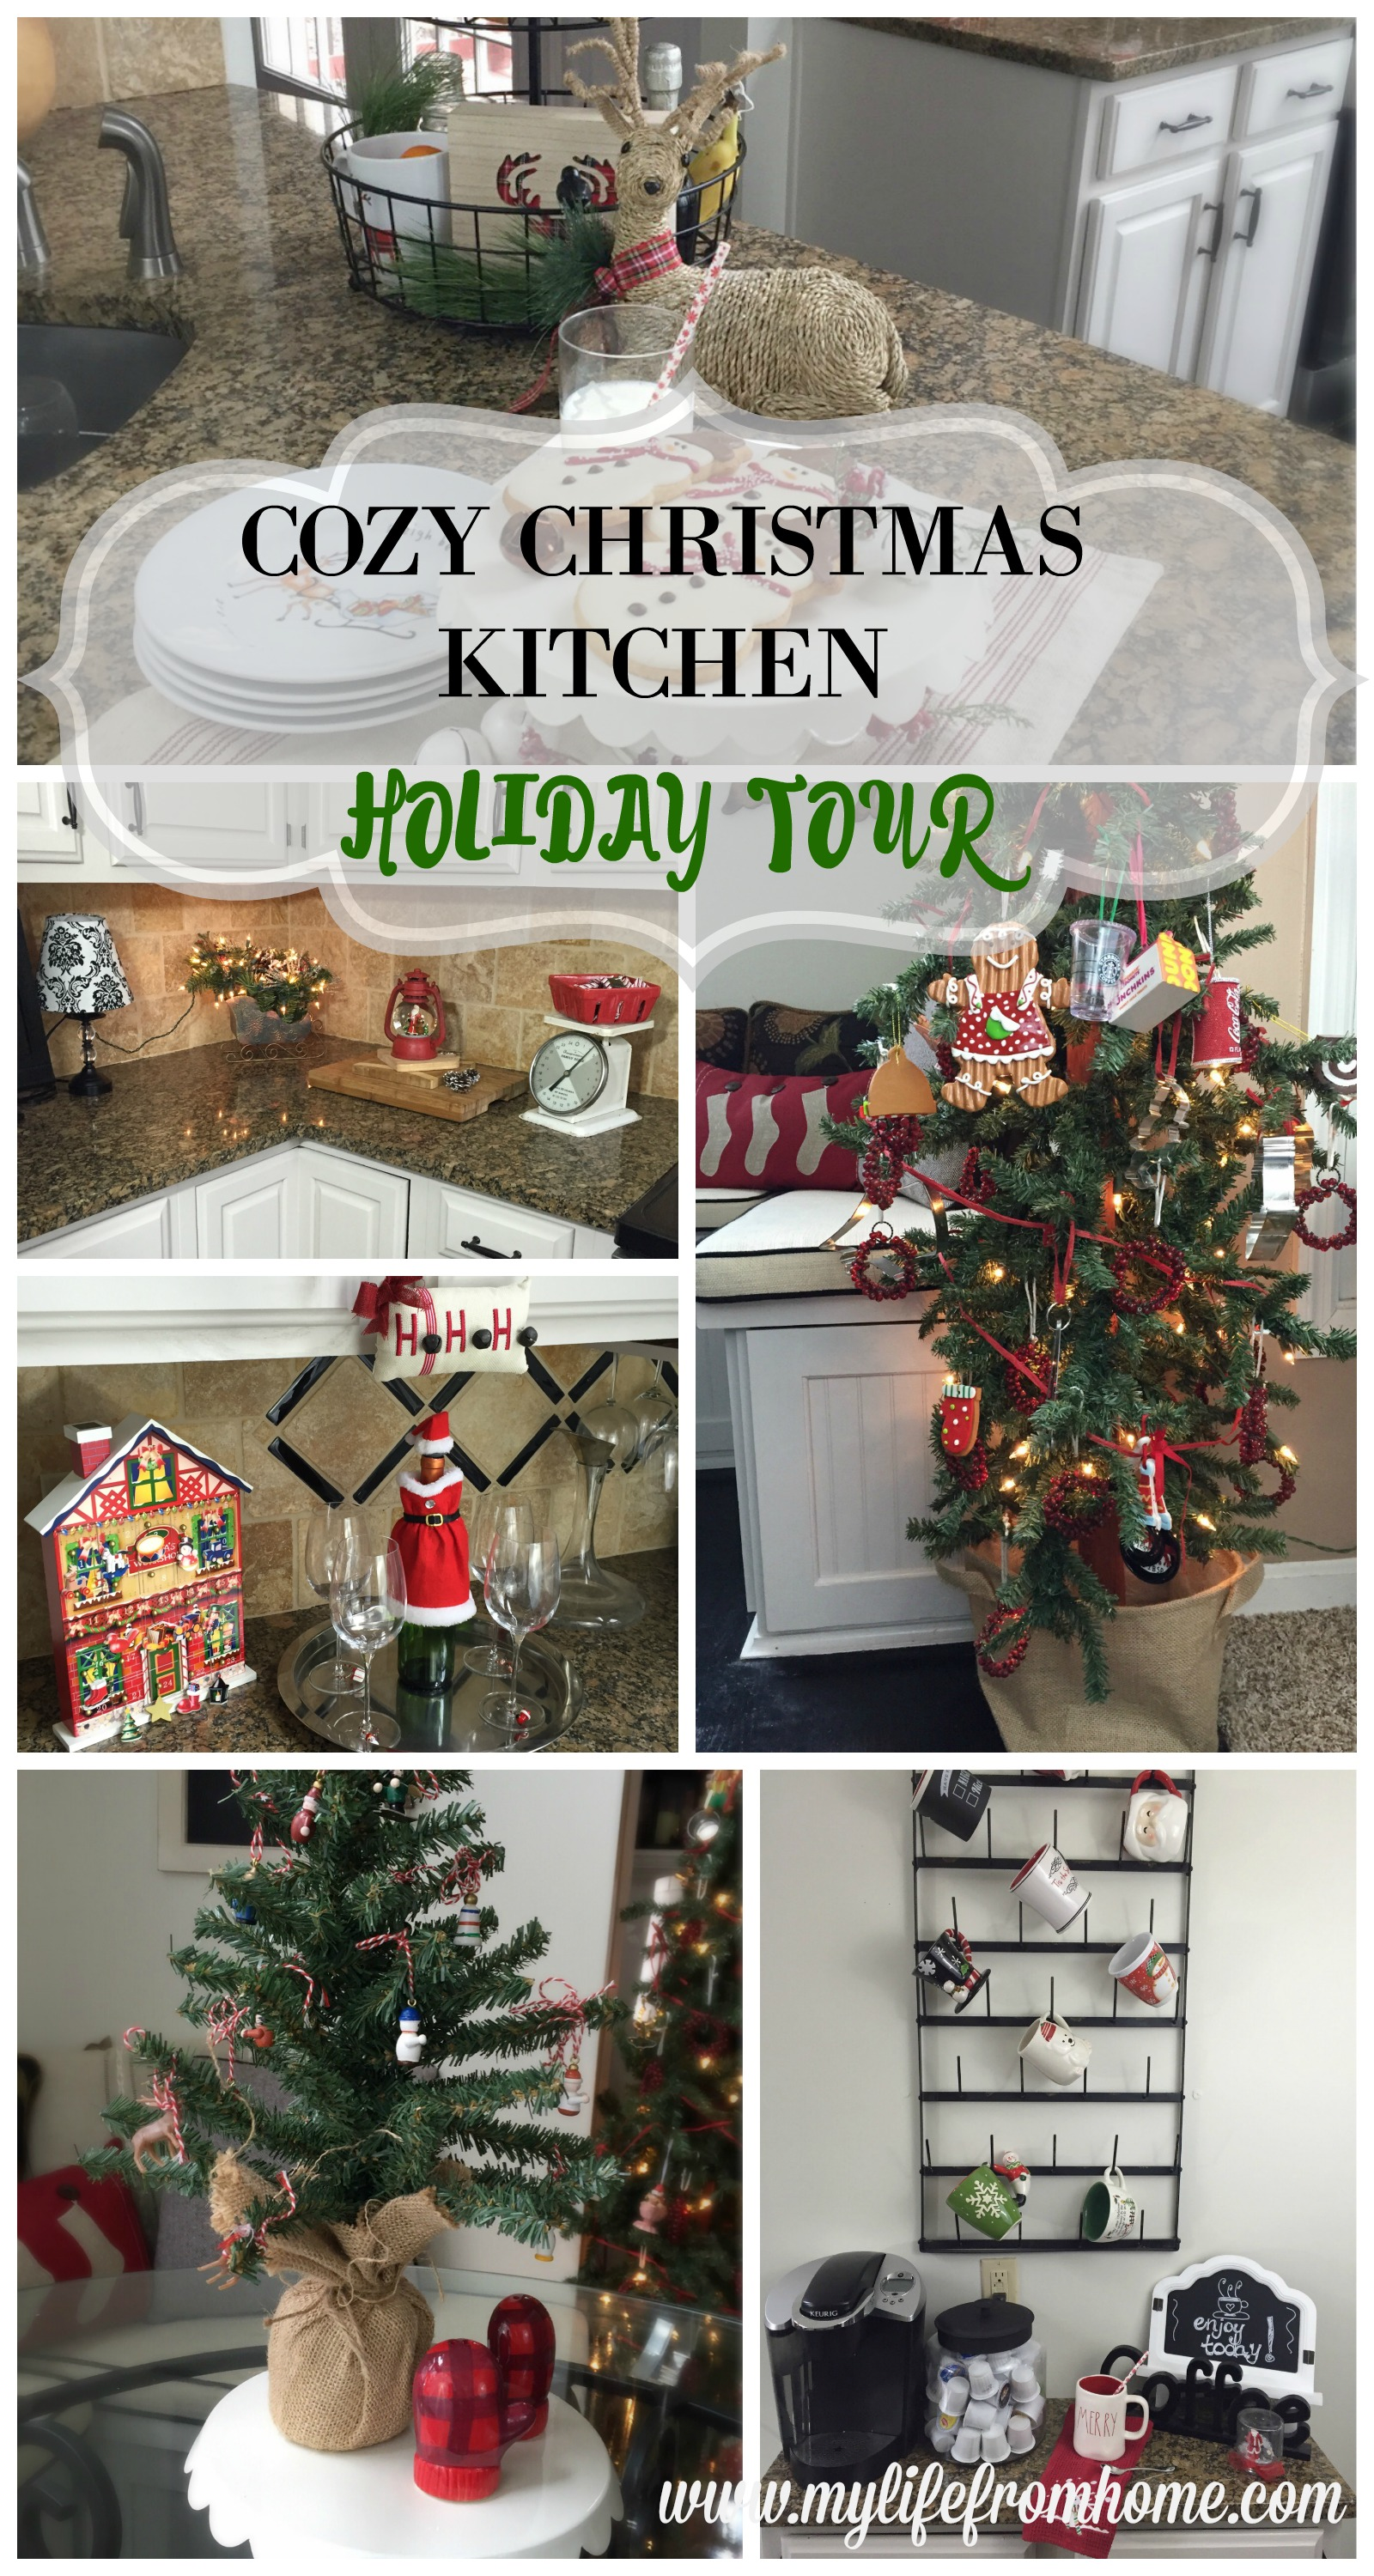 Kitchen Christmas Cozy Christmas Kitchen My Life From Home